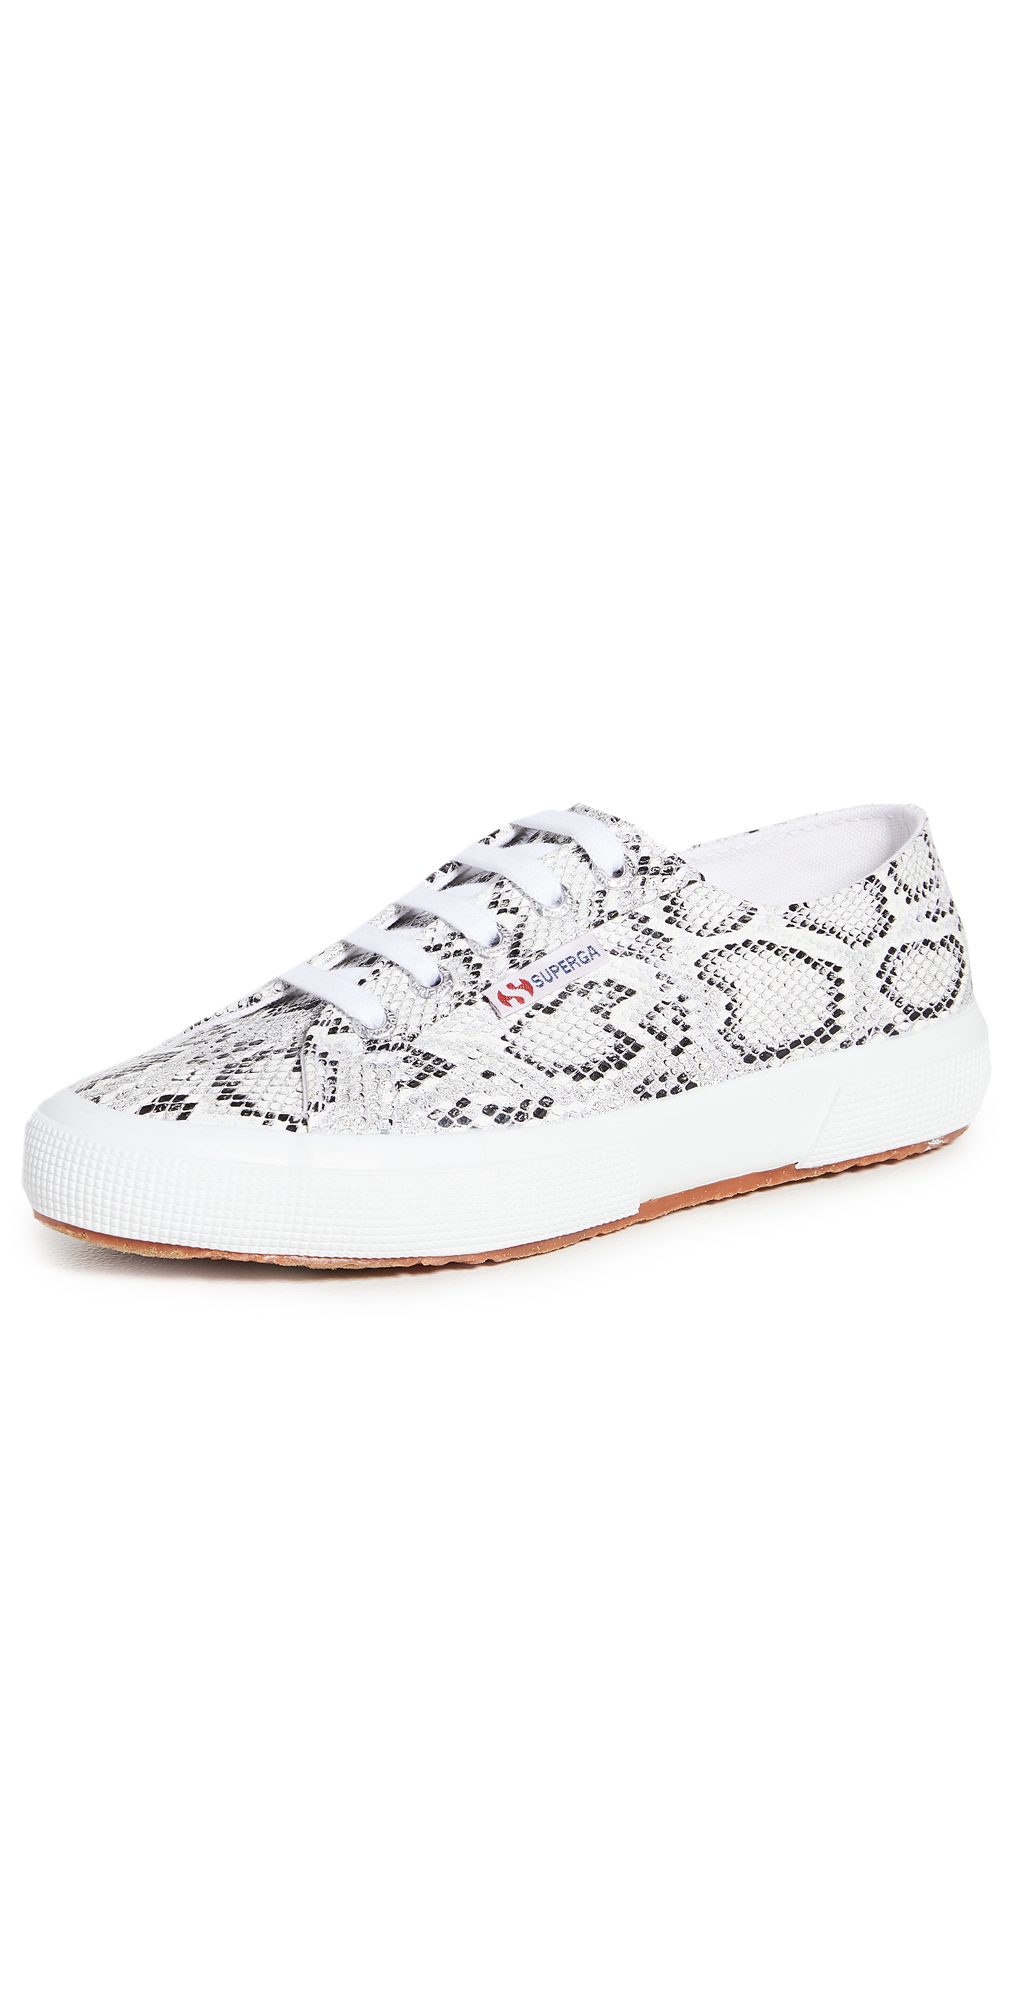 Superga 2750 Snake Lace Up Sneakers